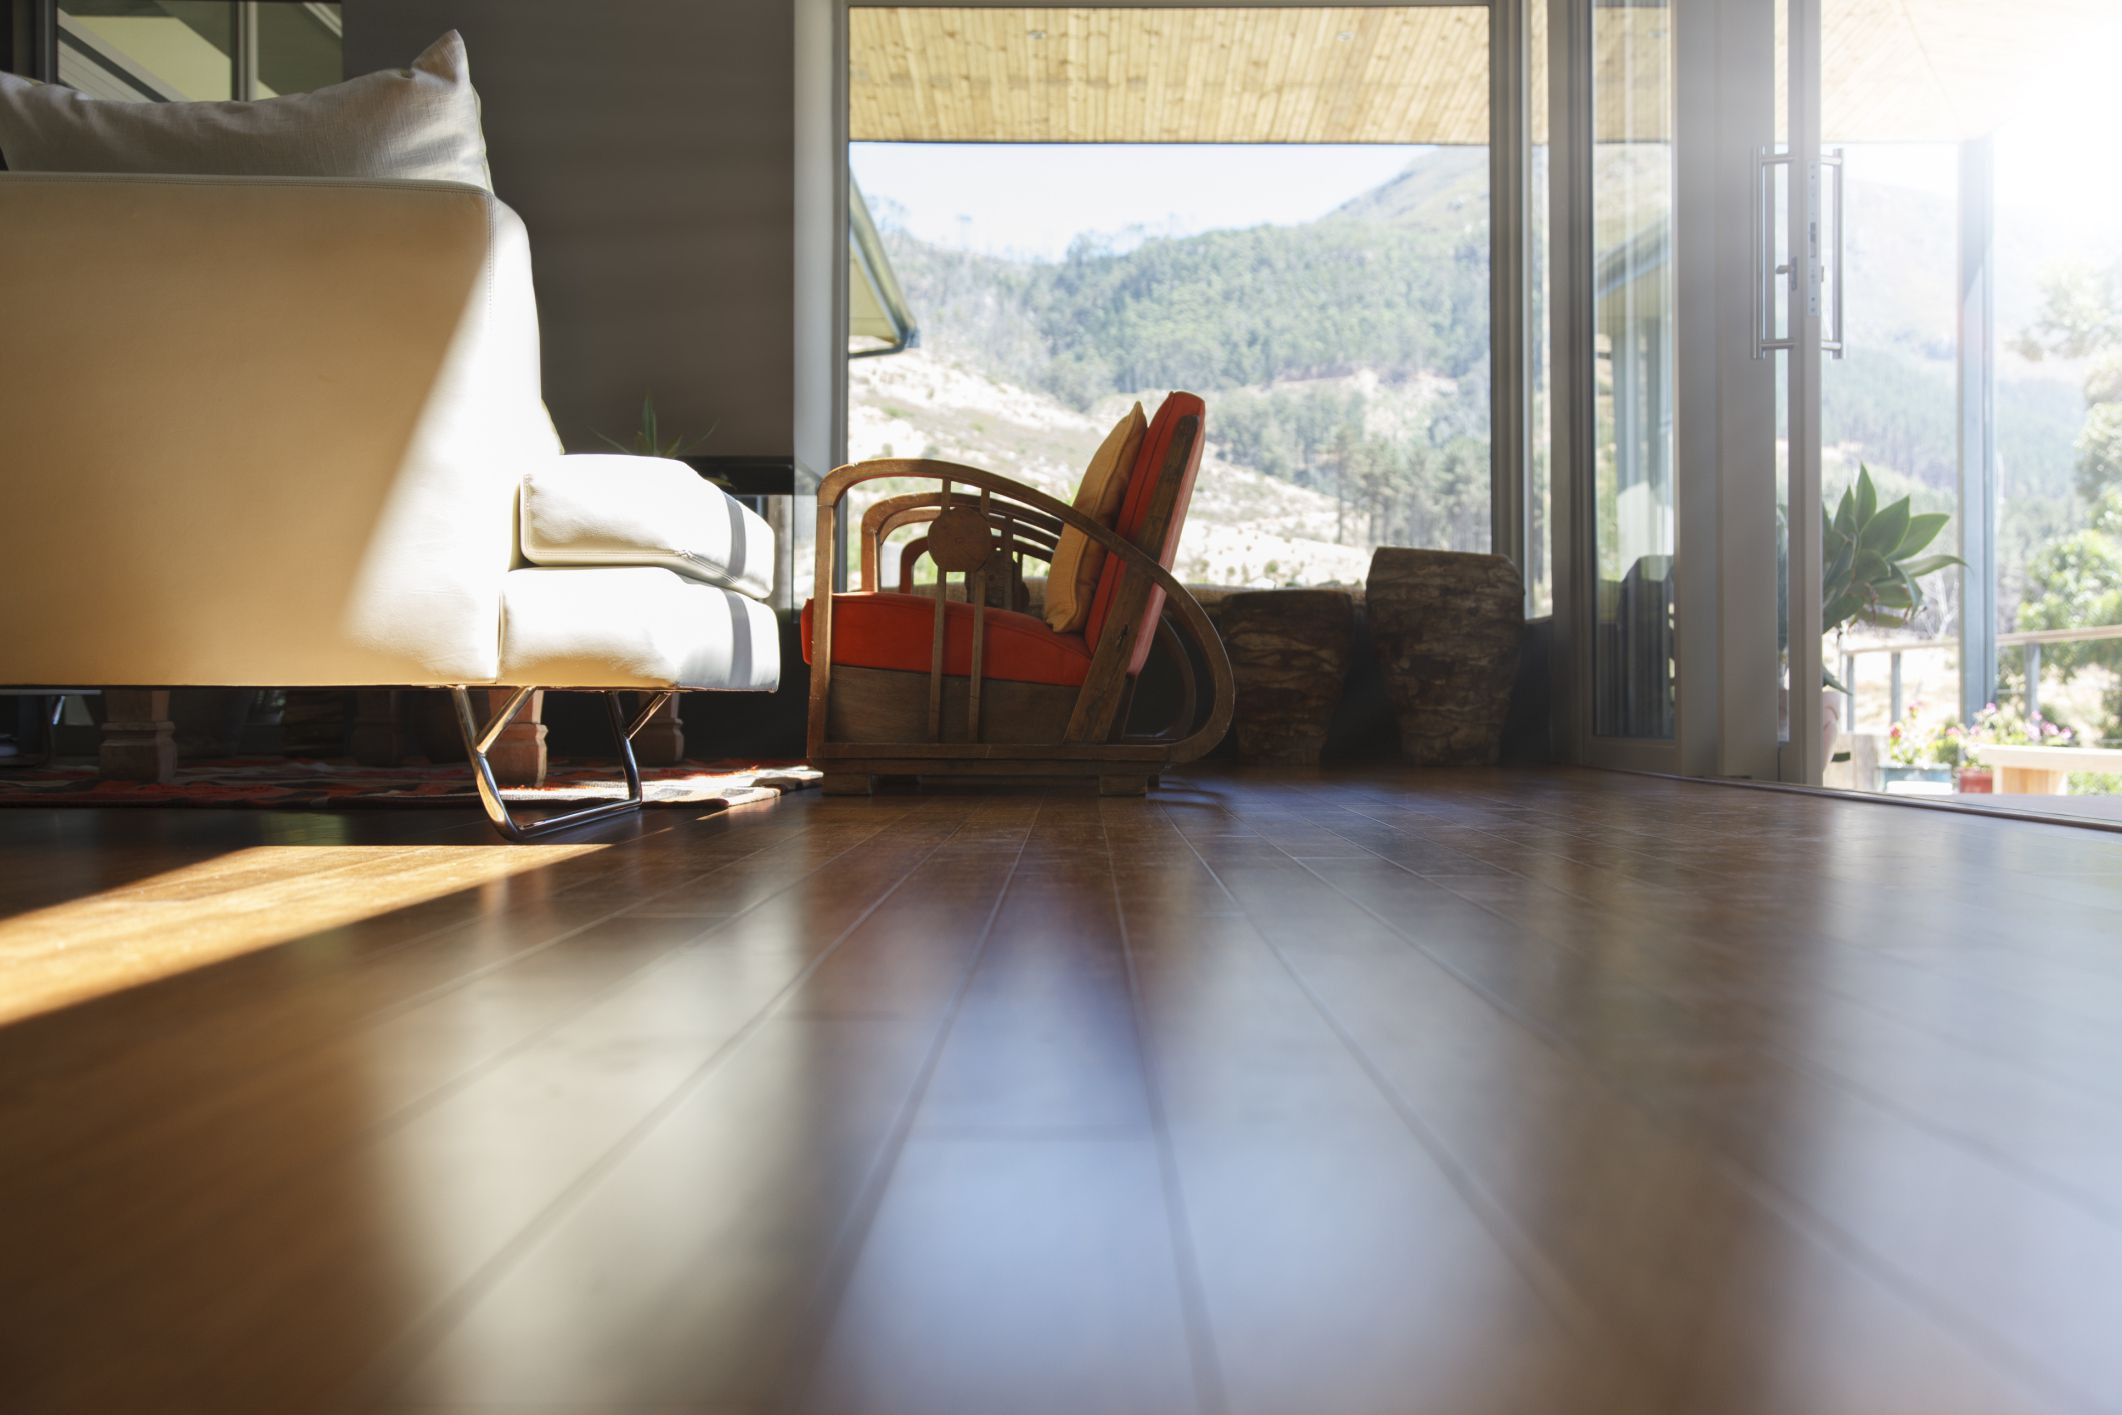 acacia walnut hardwood flooring review of pros and cons of bellawood flooring from lumber liquidators with exotic hardwood flooring 525439899 56a49d3a3df78cf77283453d